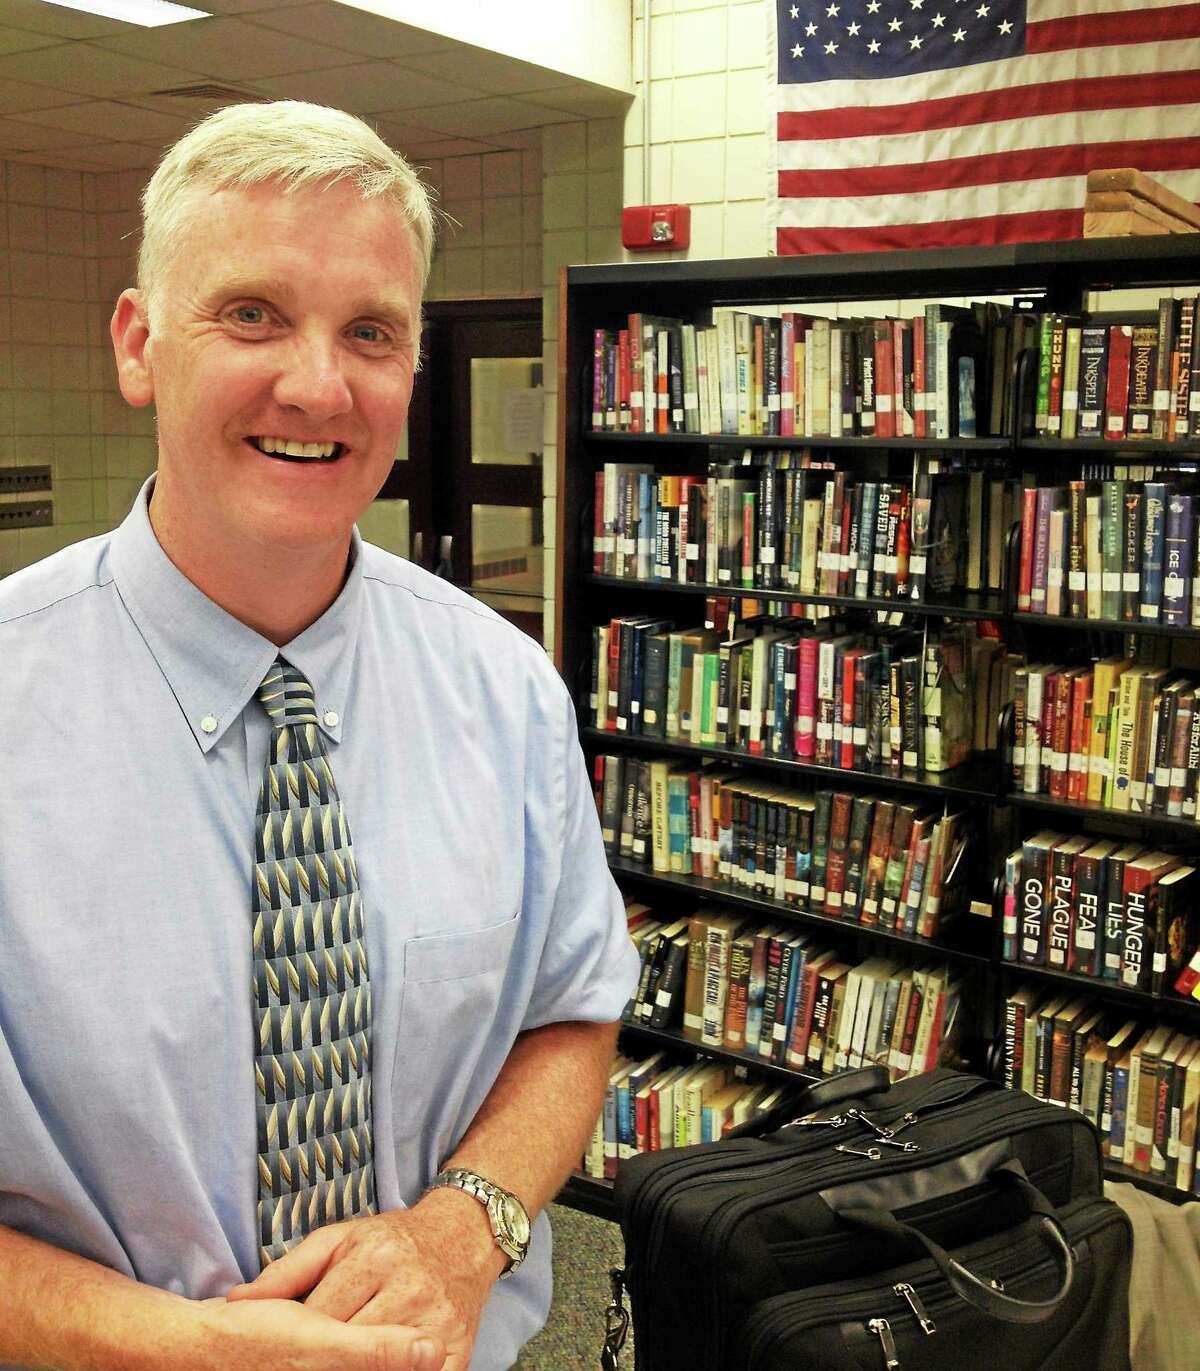 East Hampton's Assistant Superintendent of Schools Timothy Van Tasel told the school board this week he's accepted a position to head the Hebron School System.